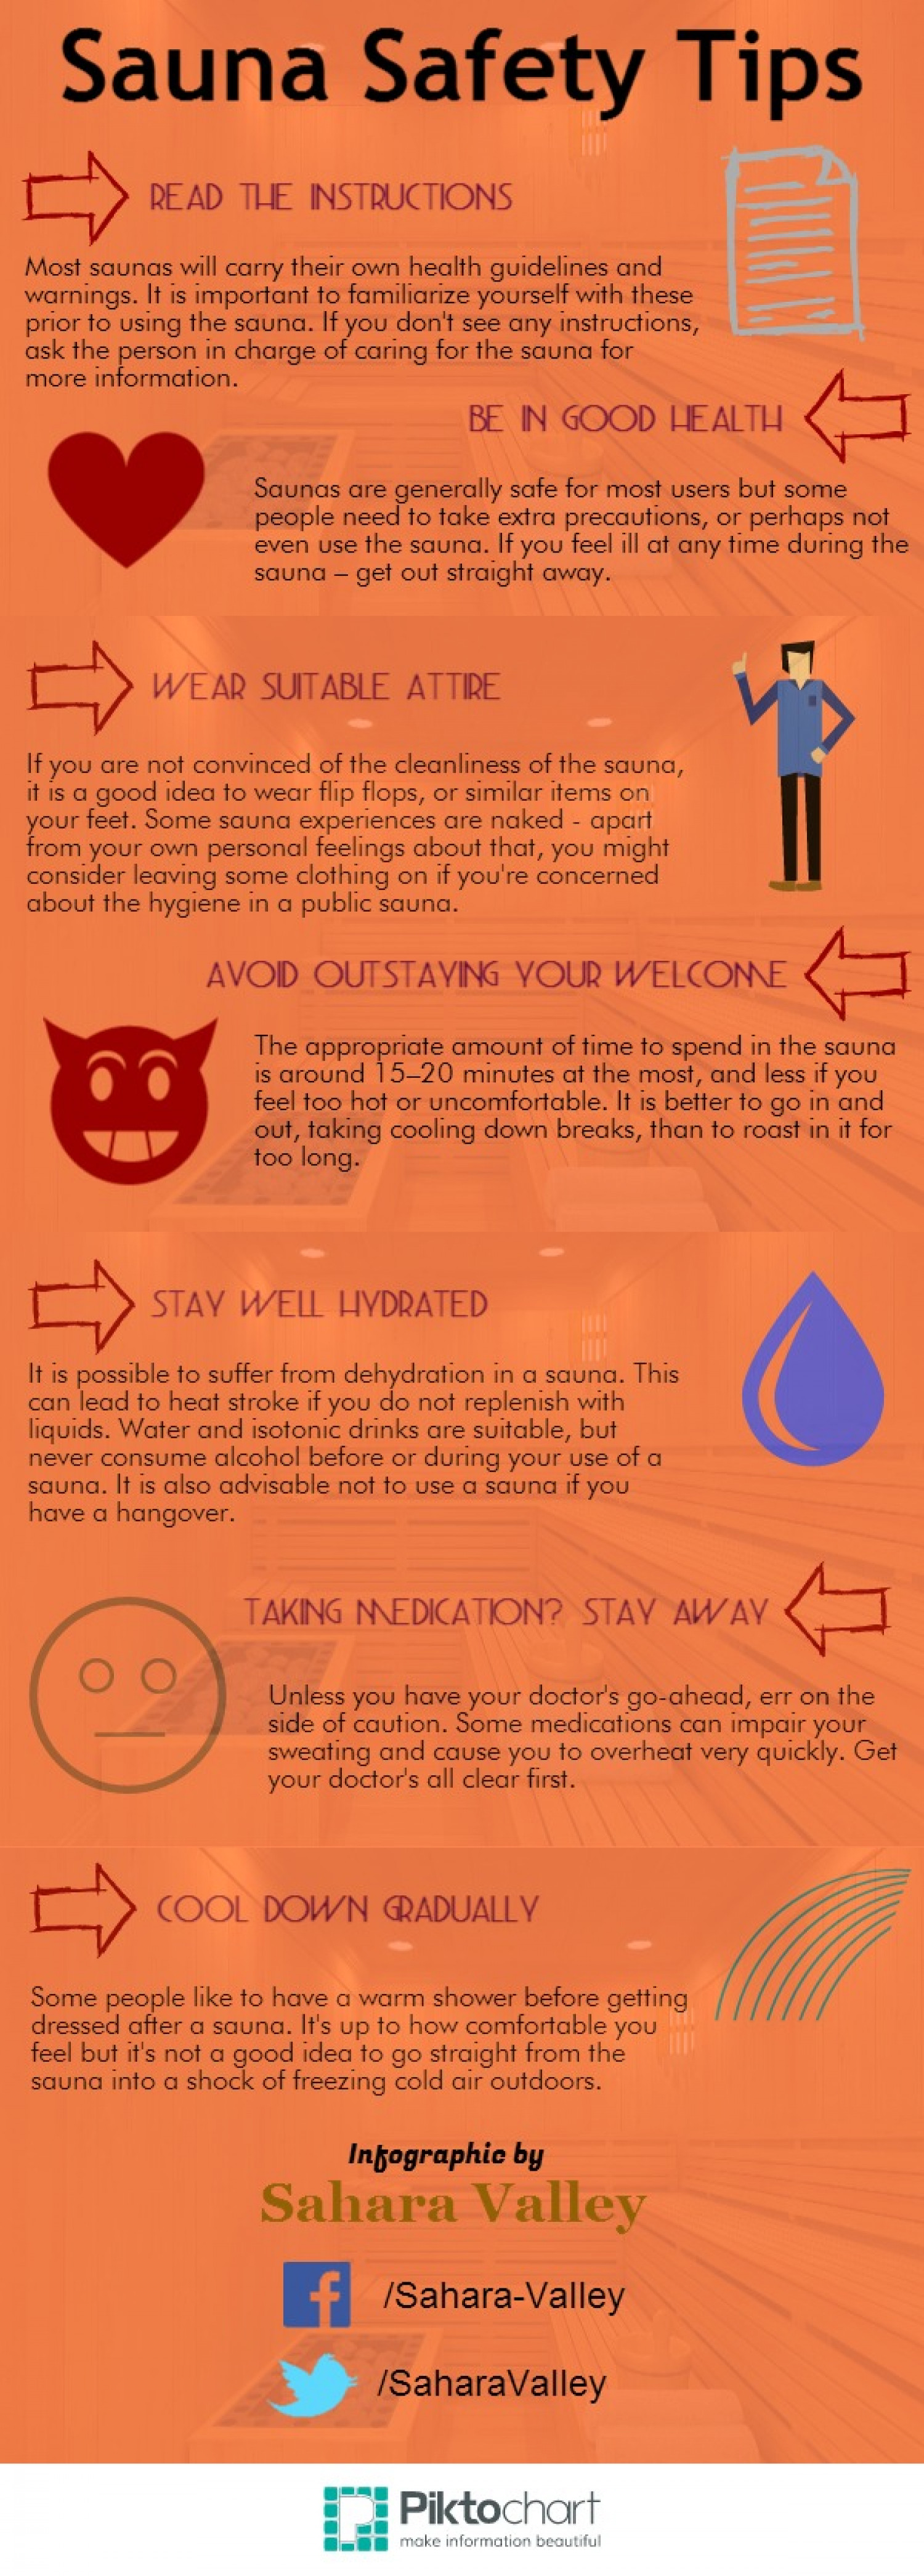 Sauna Safety Tips Infographic